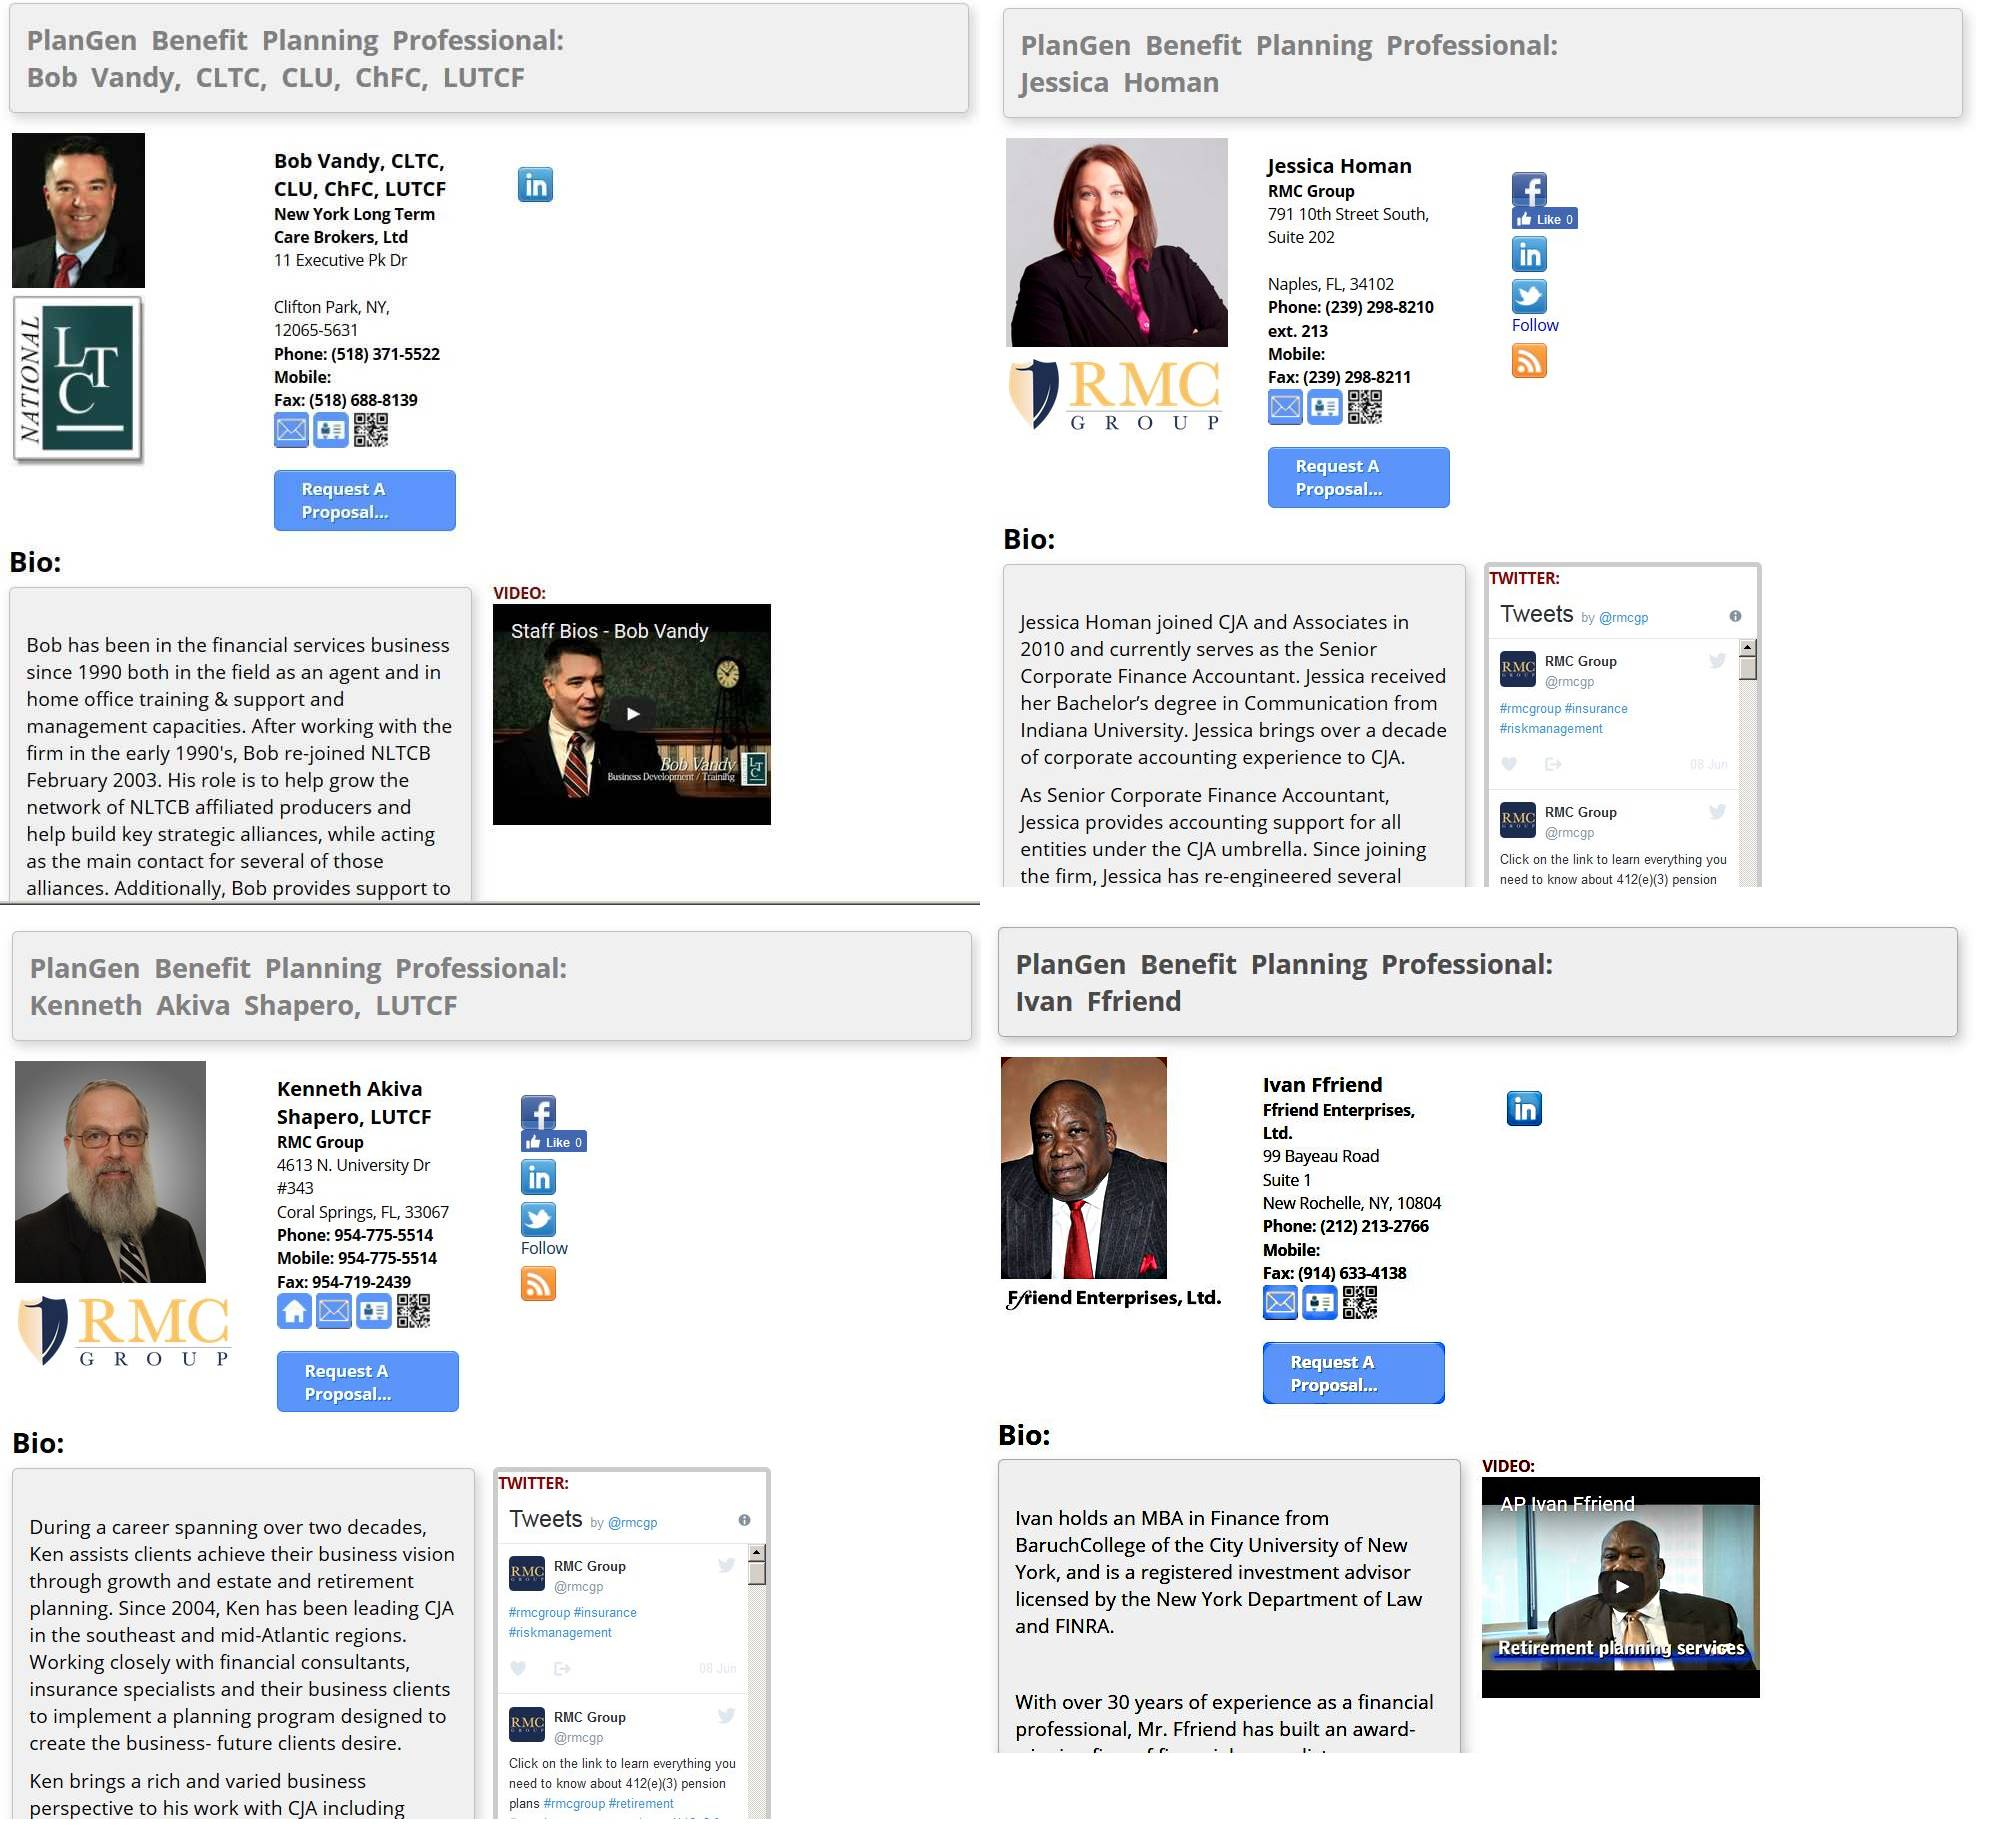 ProfessionalBio-Pages - SEO-Optimized Contact InformationElectronic Request-For-Proposals Directly Into PlanGenSocial Media Feeds and LinkagesResume - CV Biography SectionsVideo LinksResource LinksUser-Editable